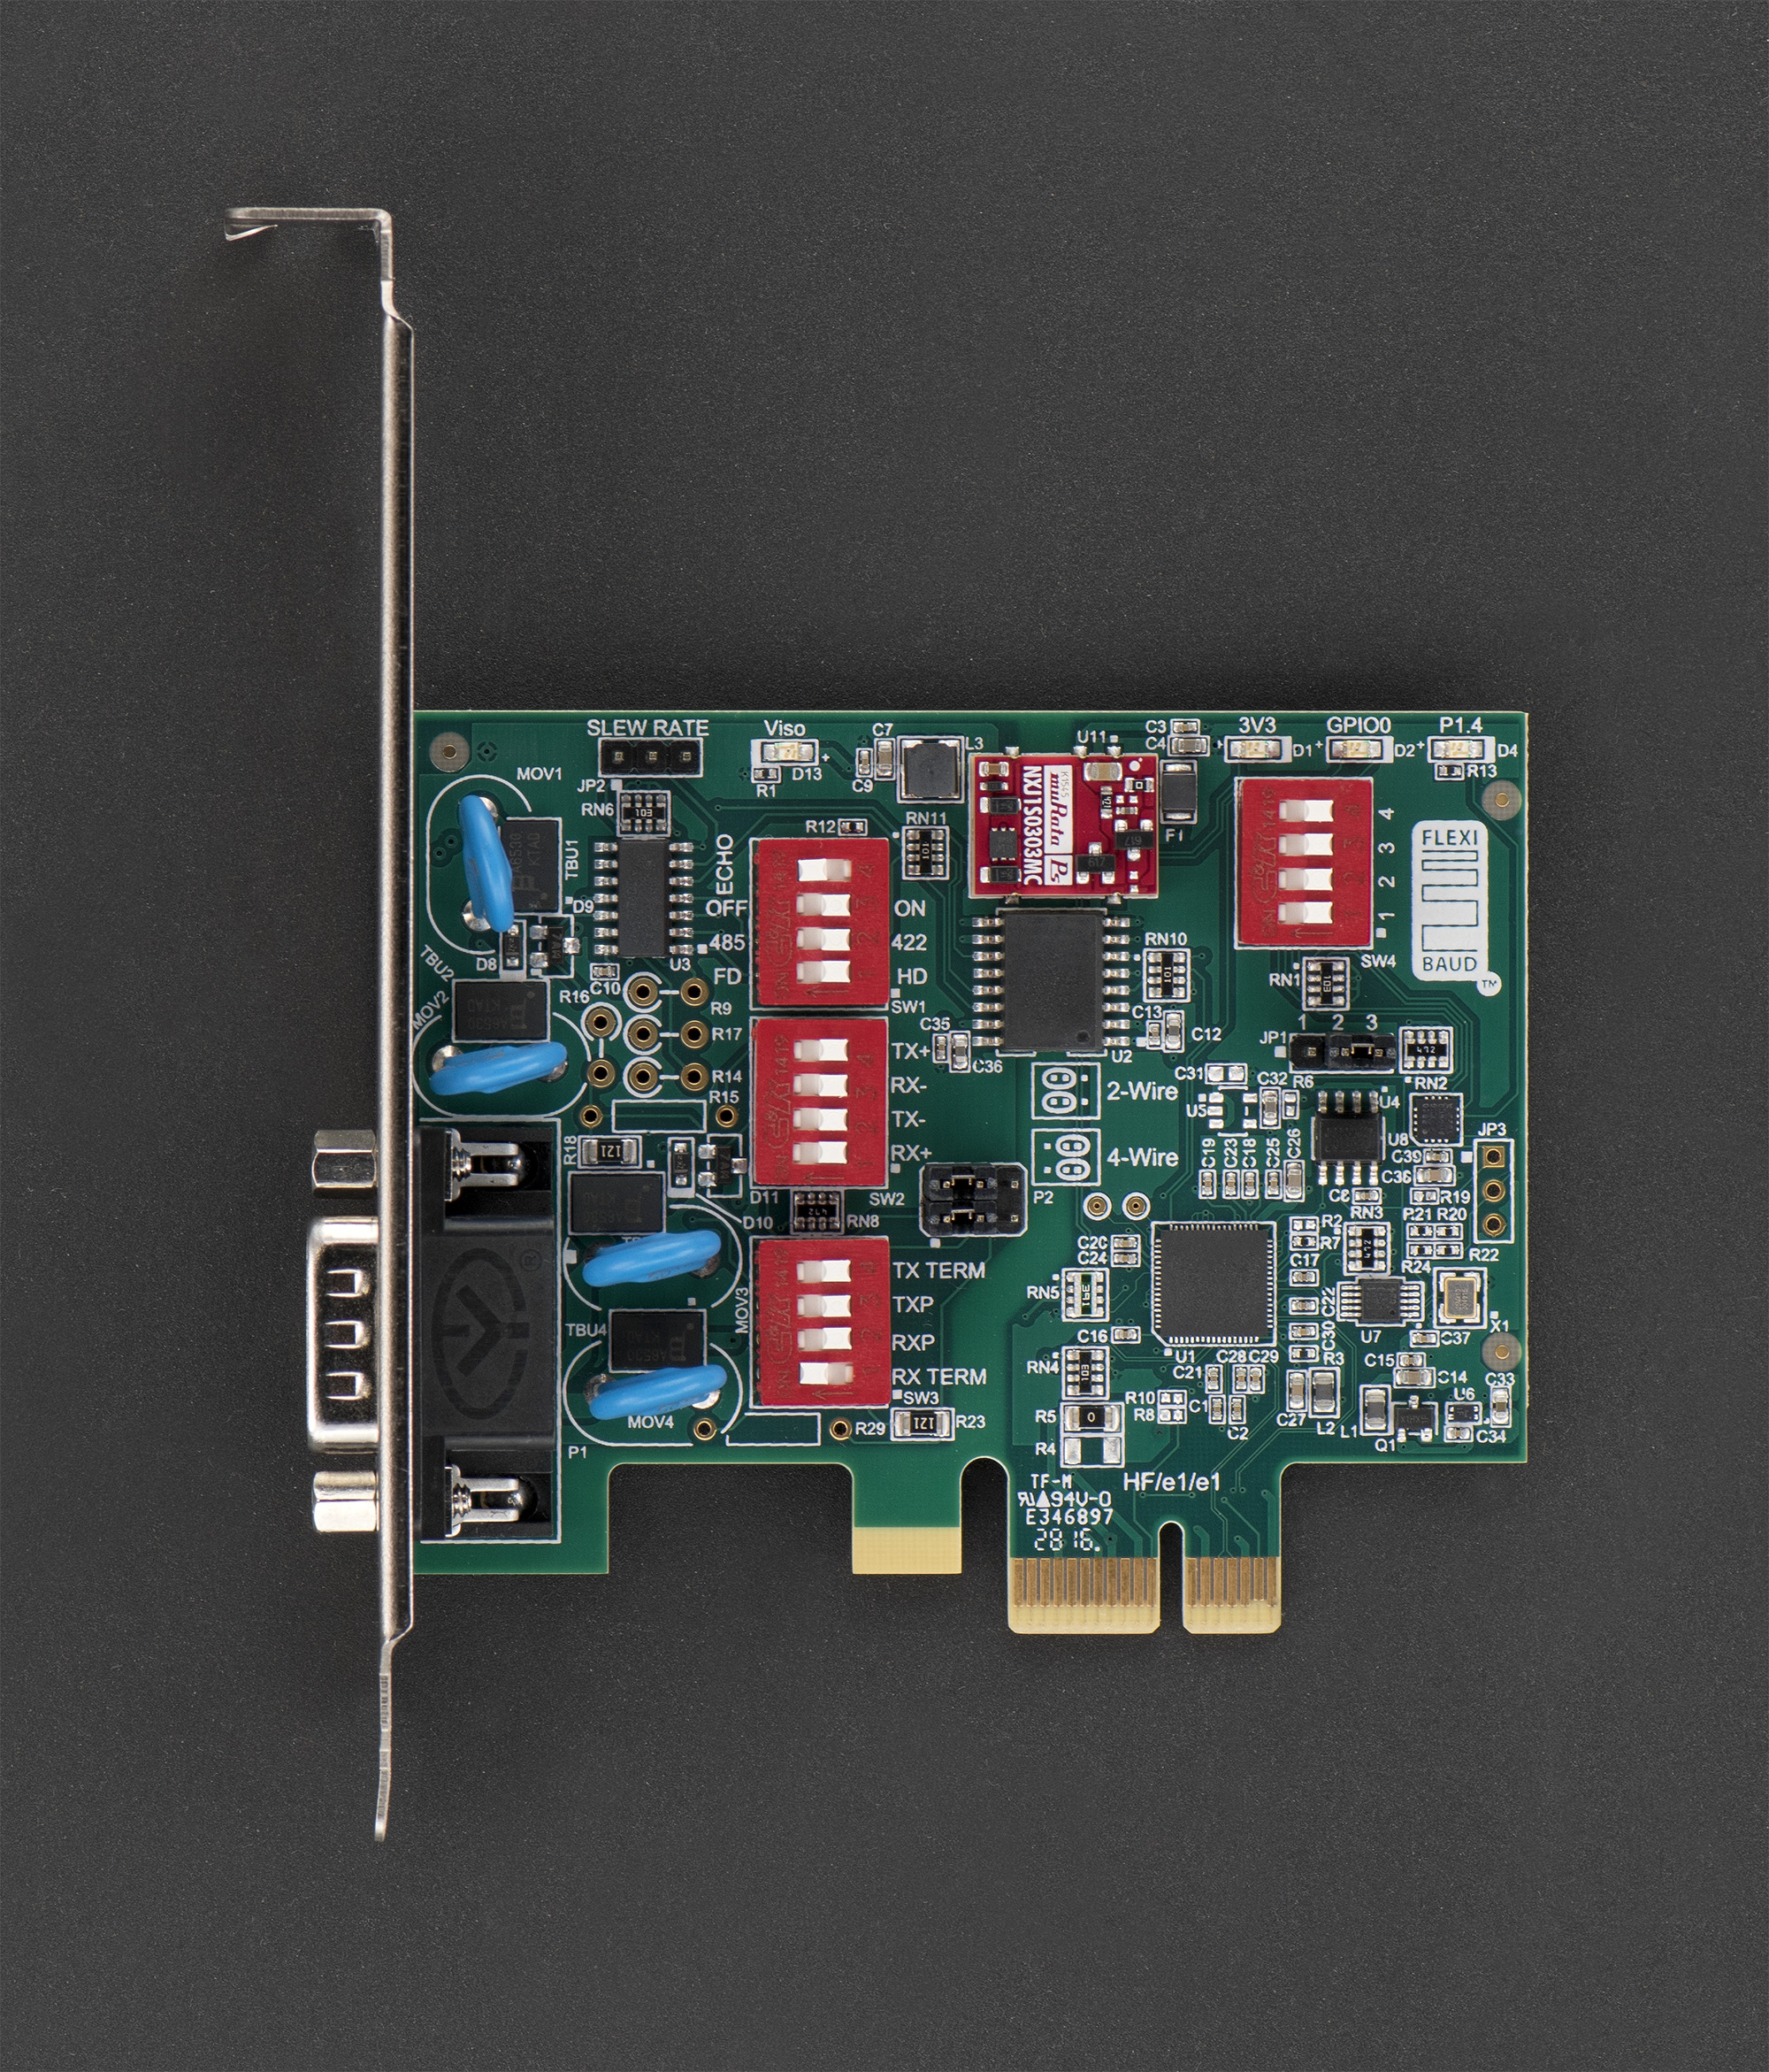 LF1089KB - Axxon Leader in PCI Express I/O Cards